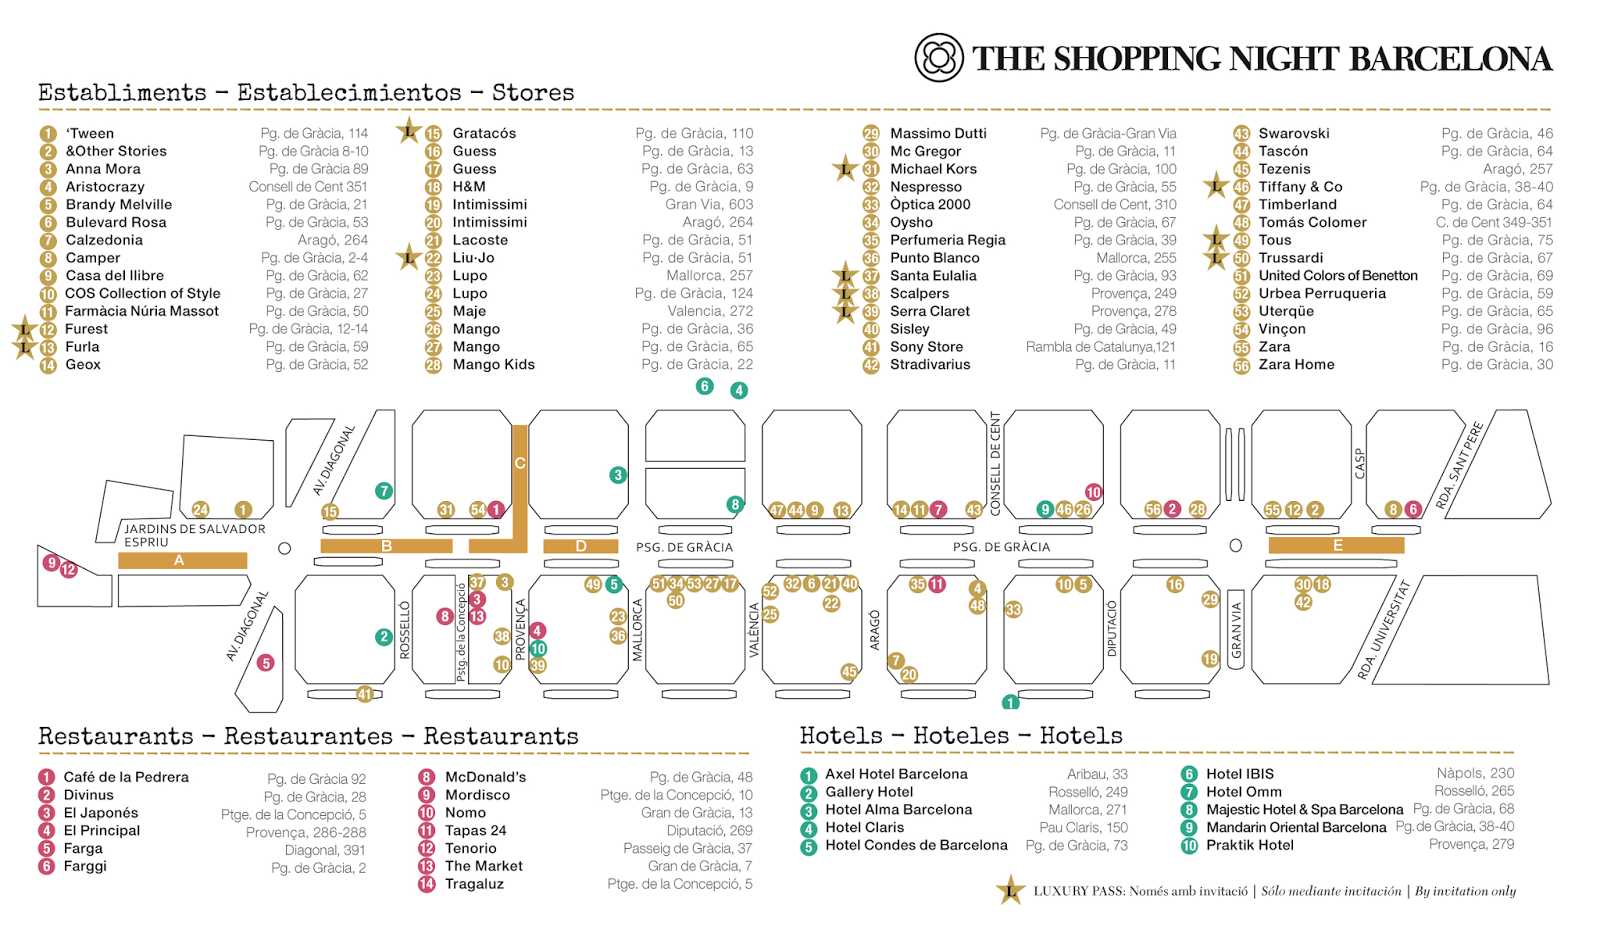 Shopping Night Barcelona 2014 plano, mapa